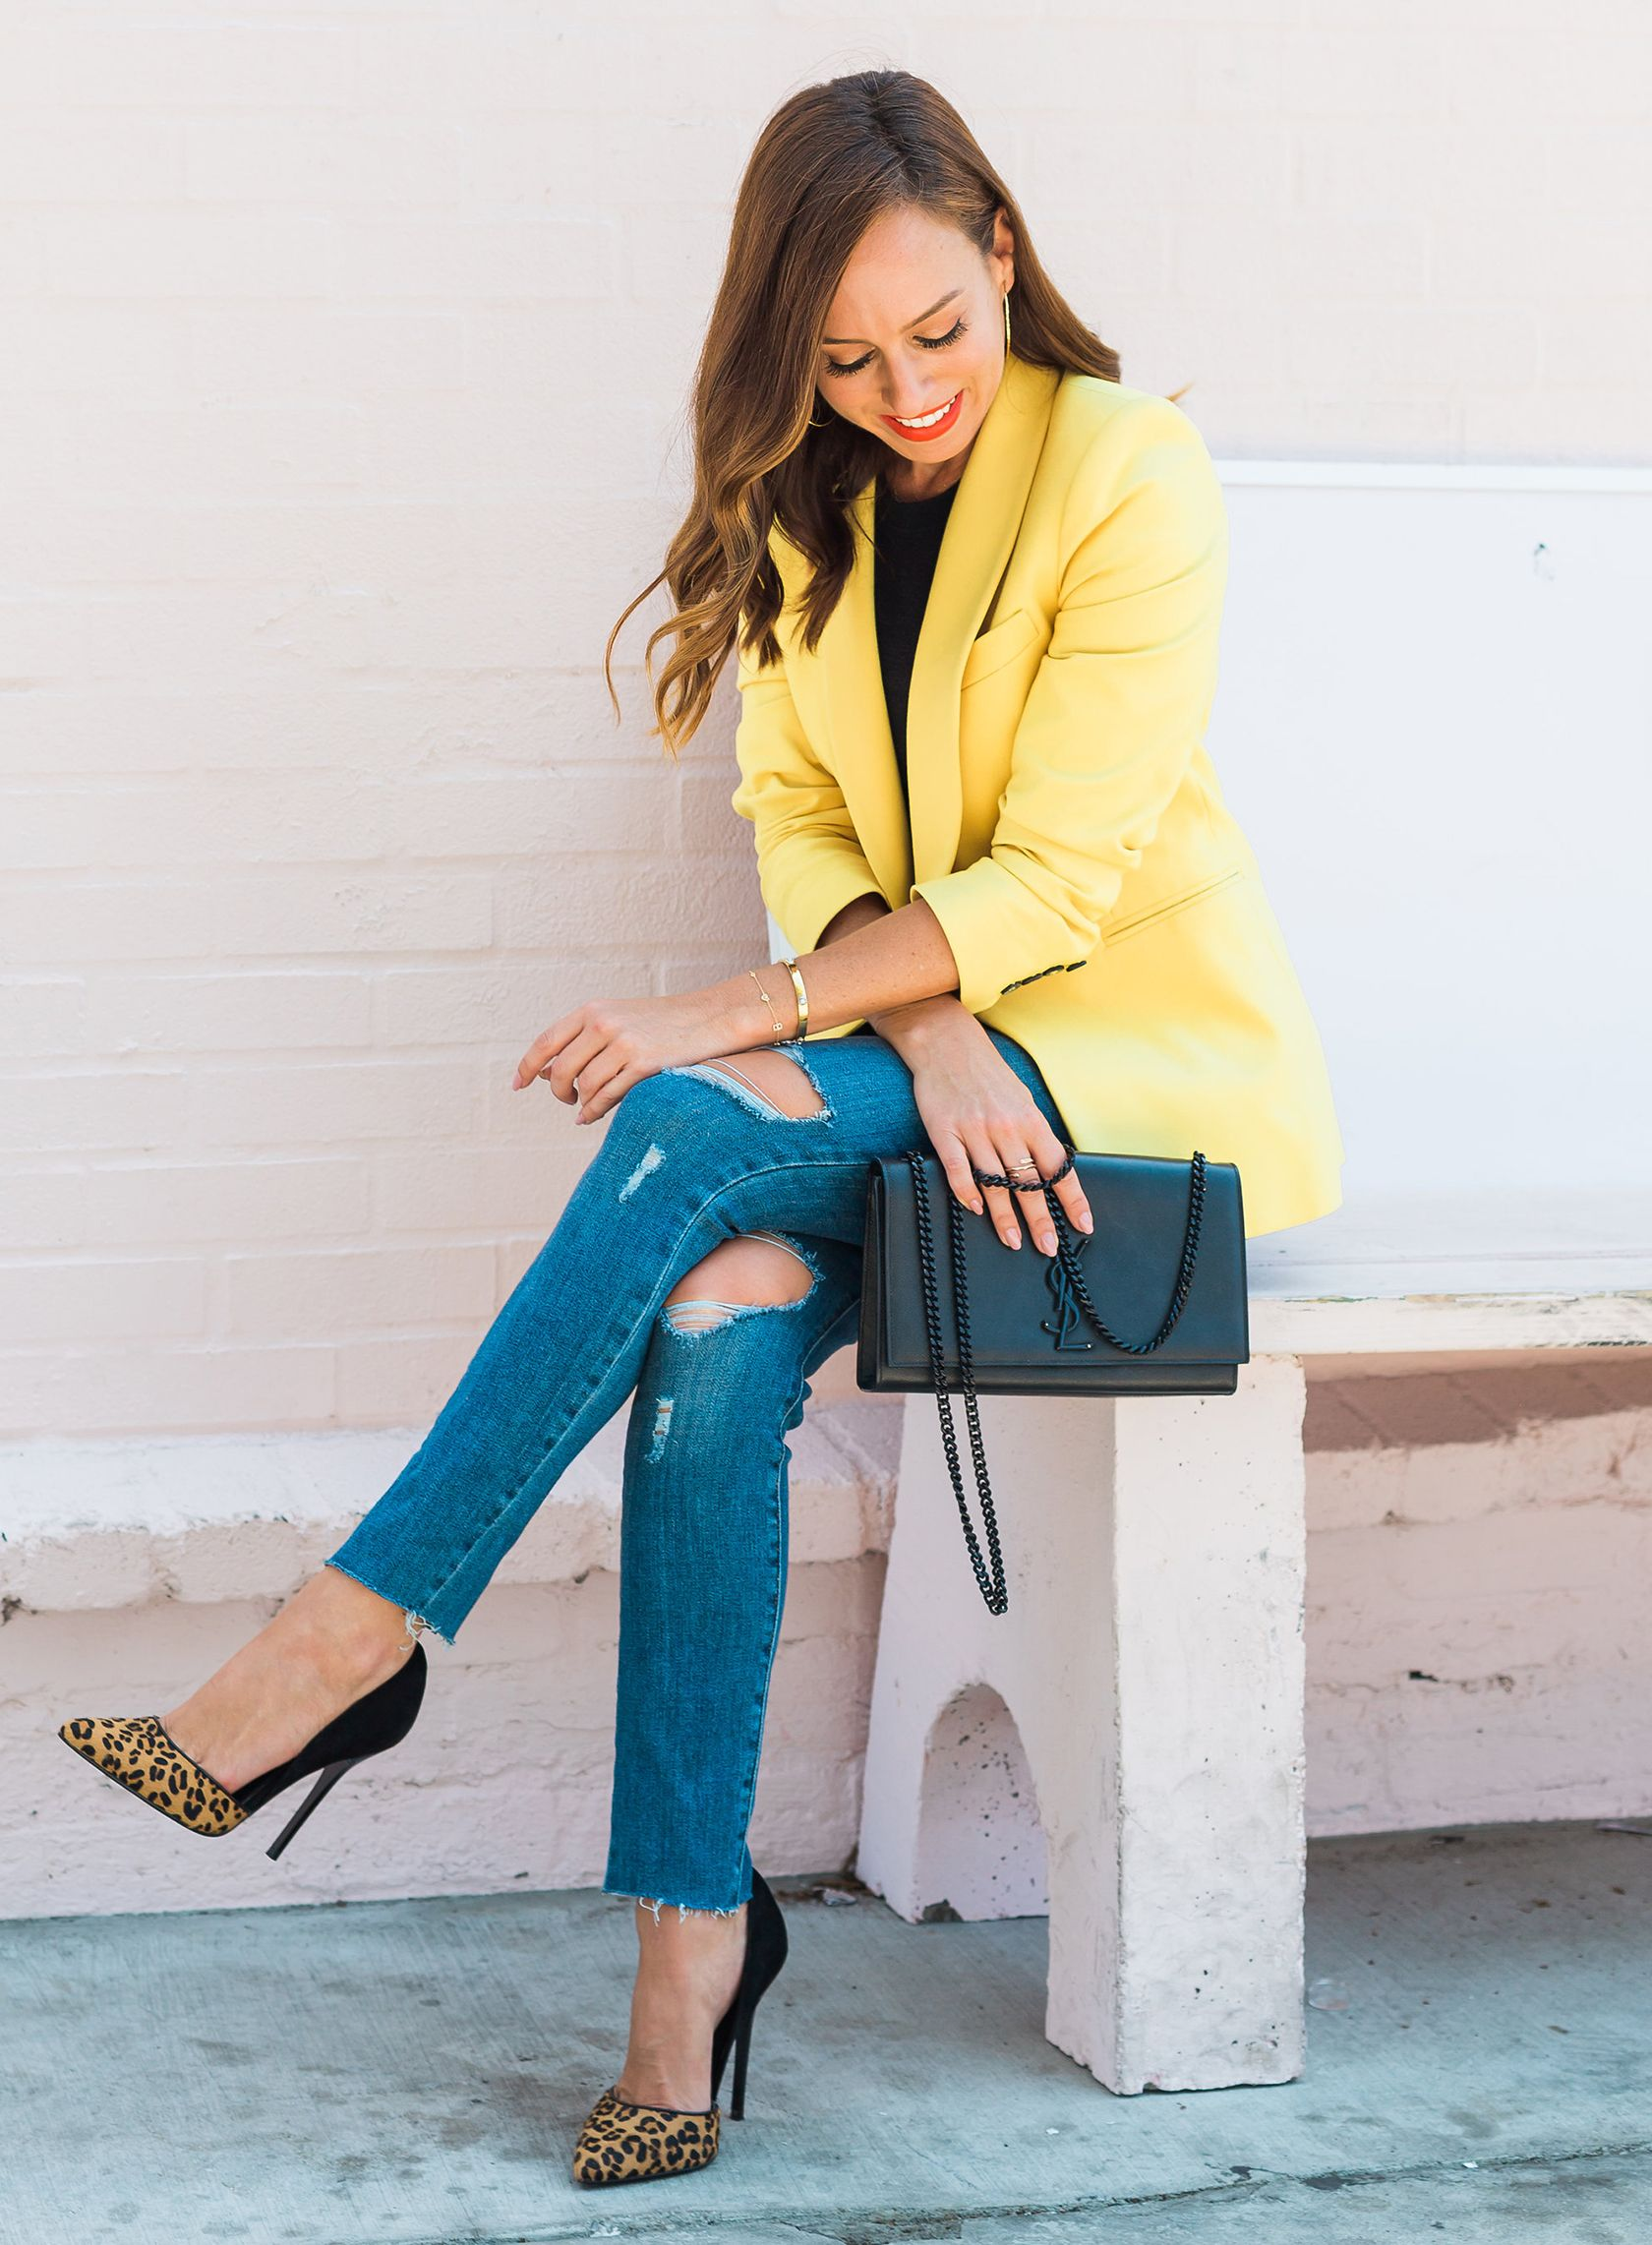 4b926e8a87861 Sydne Style shows how to wear the gen z yellow trend in bright blazers for  fall  blazers  yellow  jeans  leopard  sydnesummer